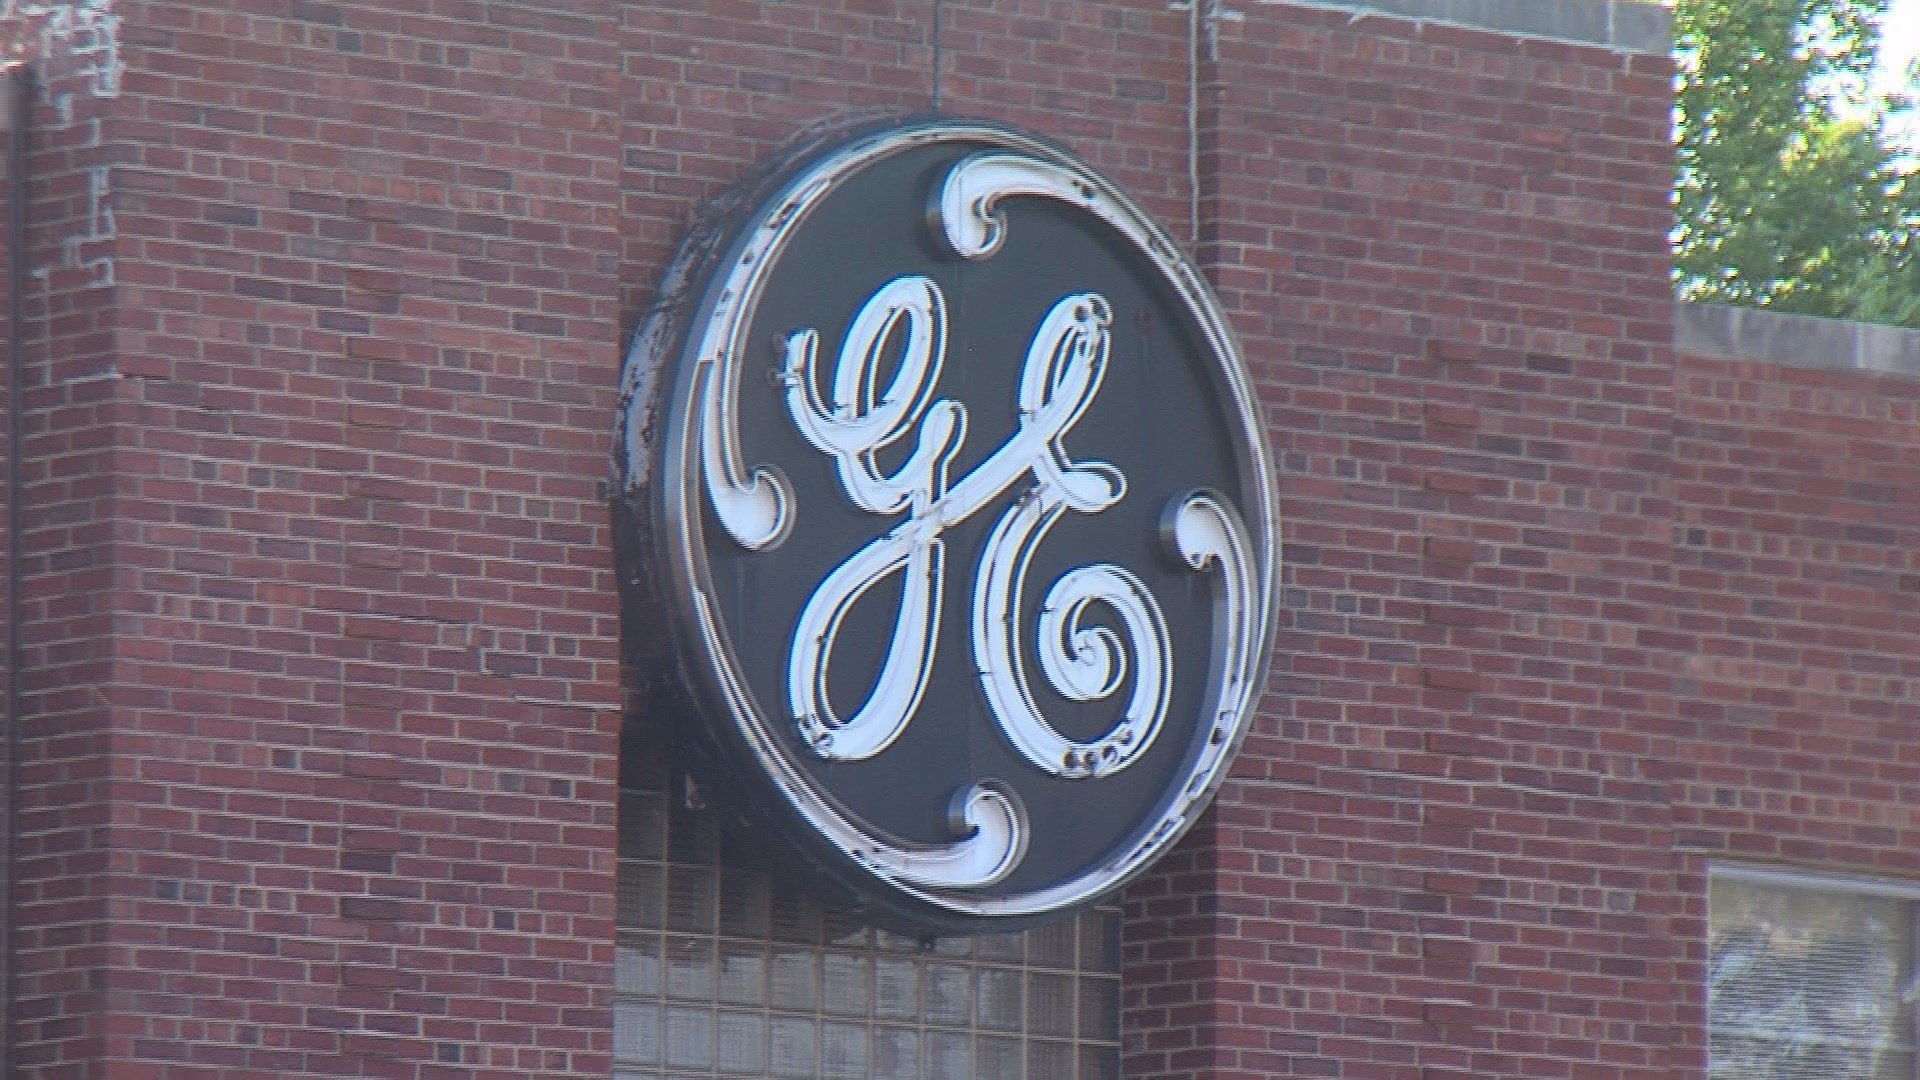 GE Lighting announces intent to close Mattoon lamp plant